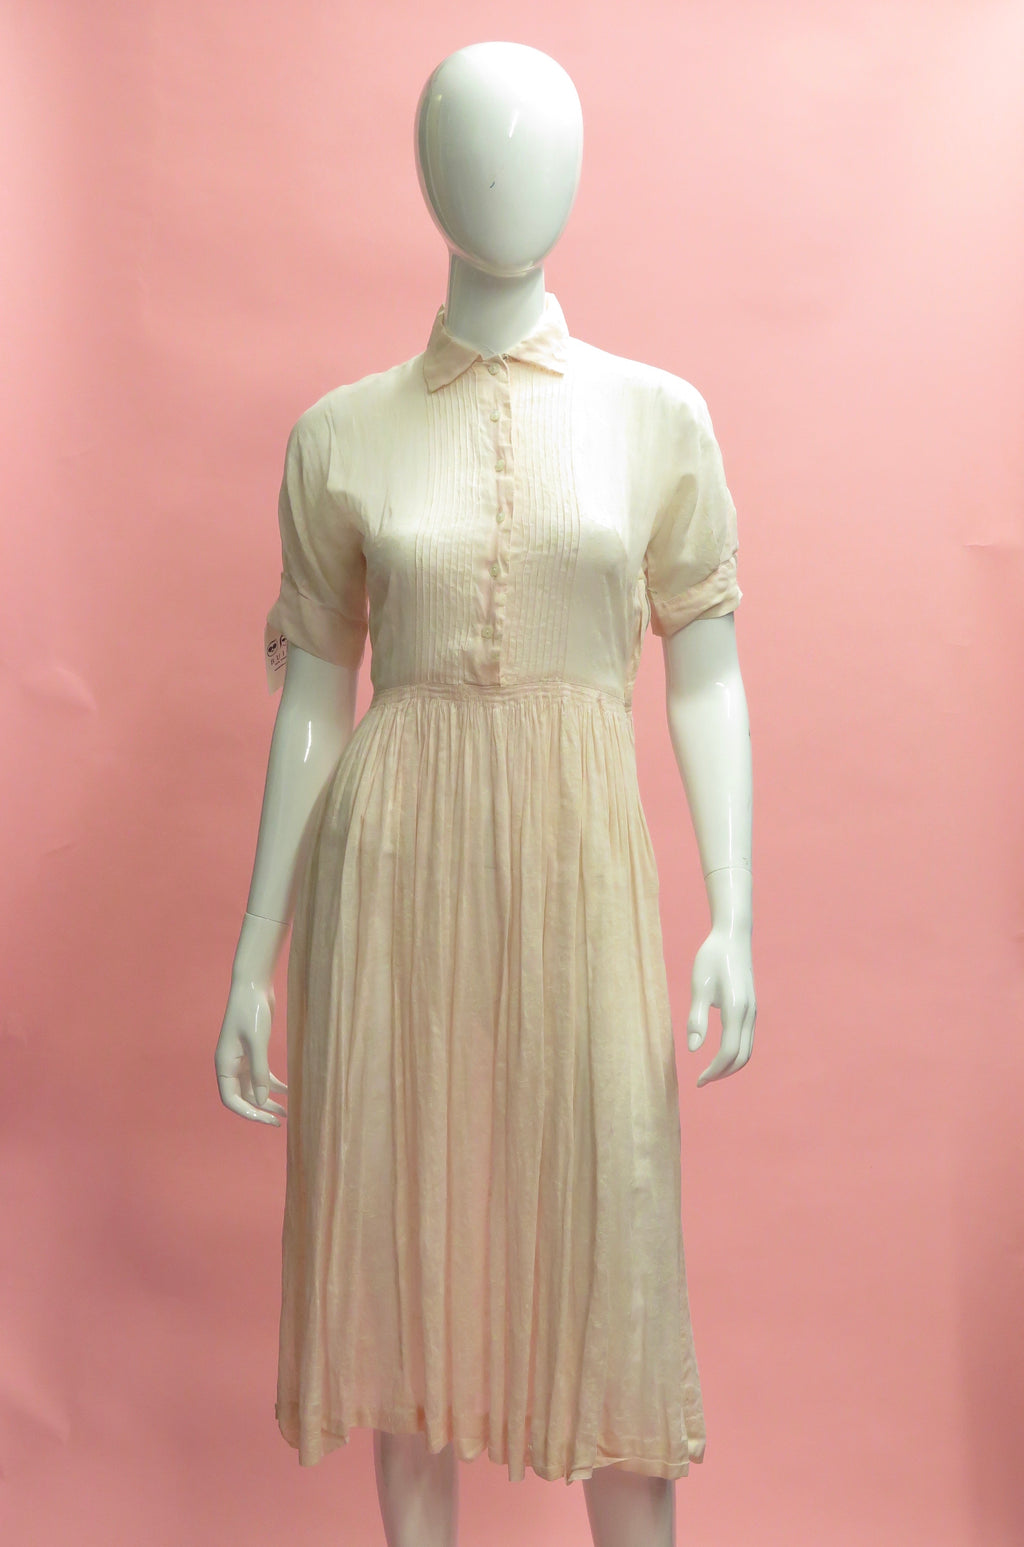 1950's Pale Pink Floral Flocked Cotton Dress